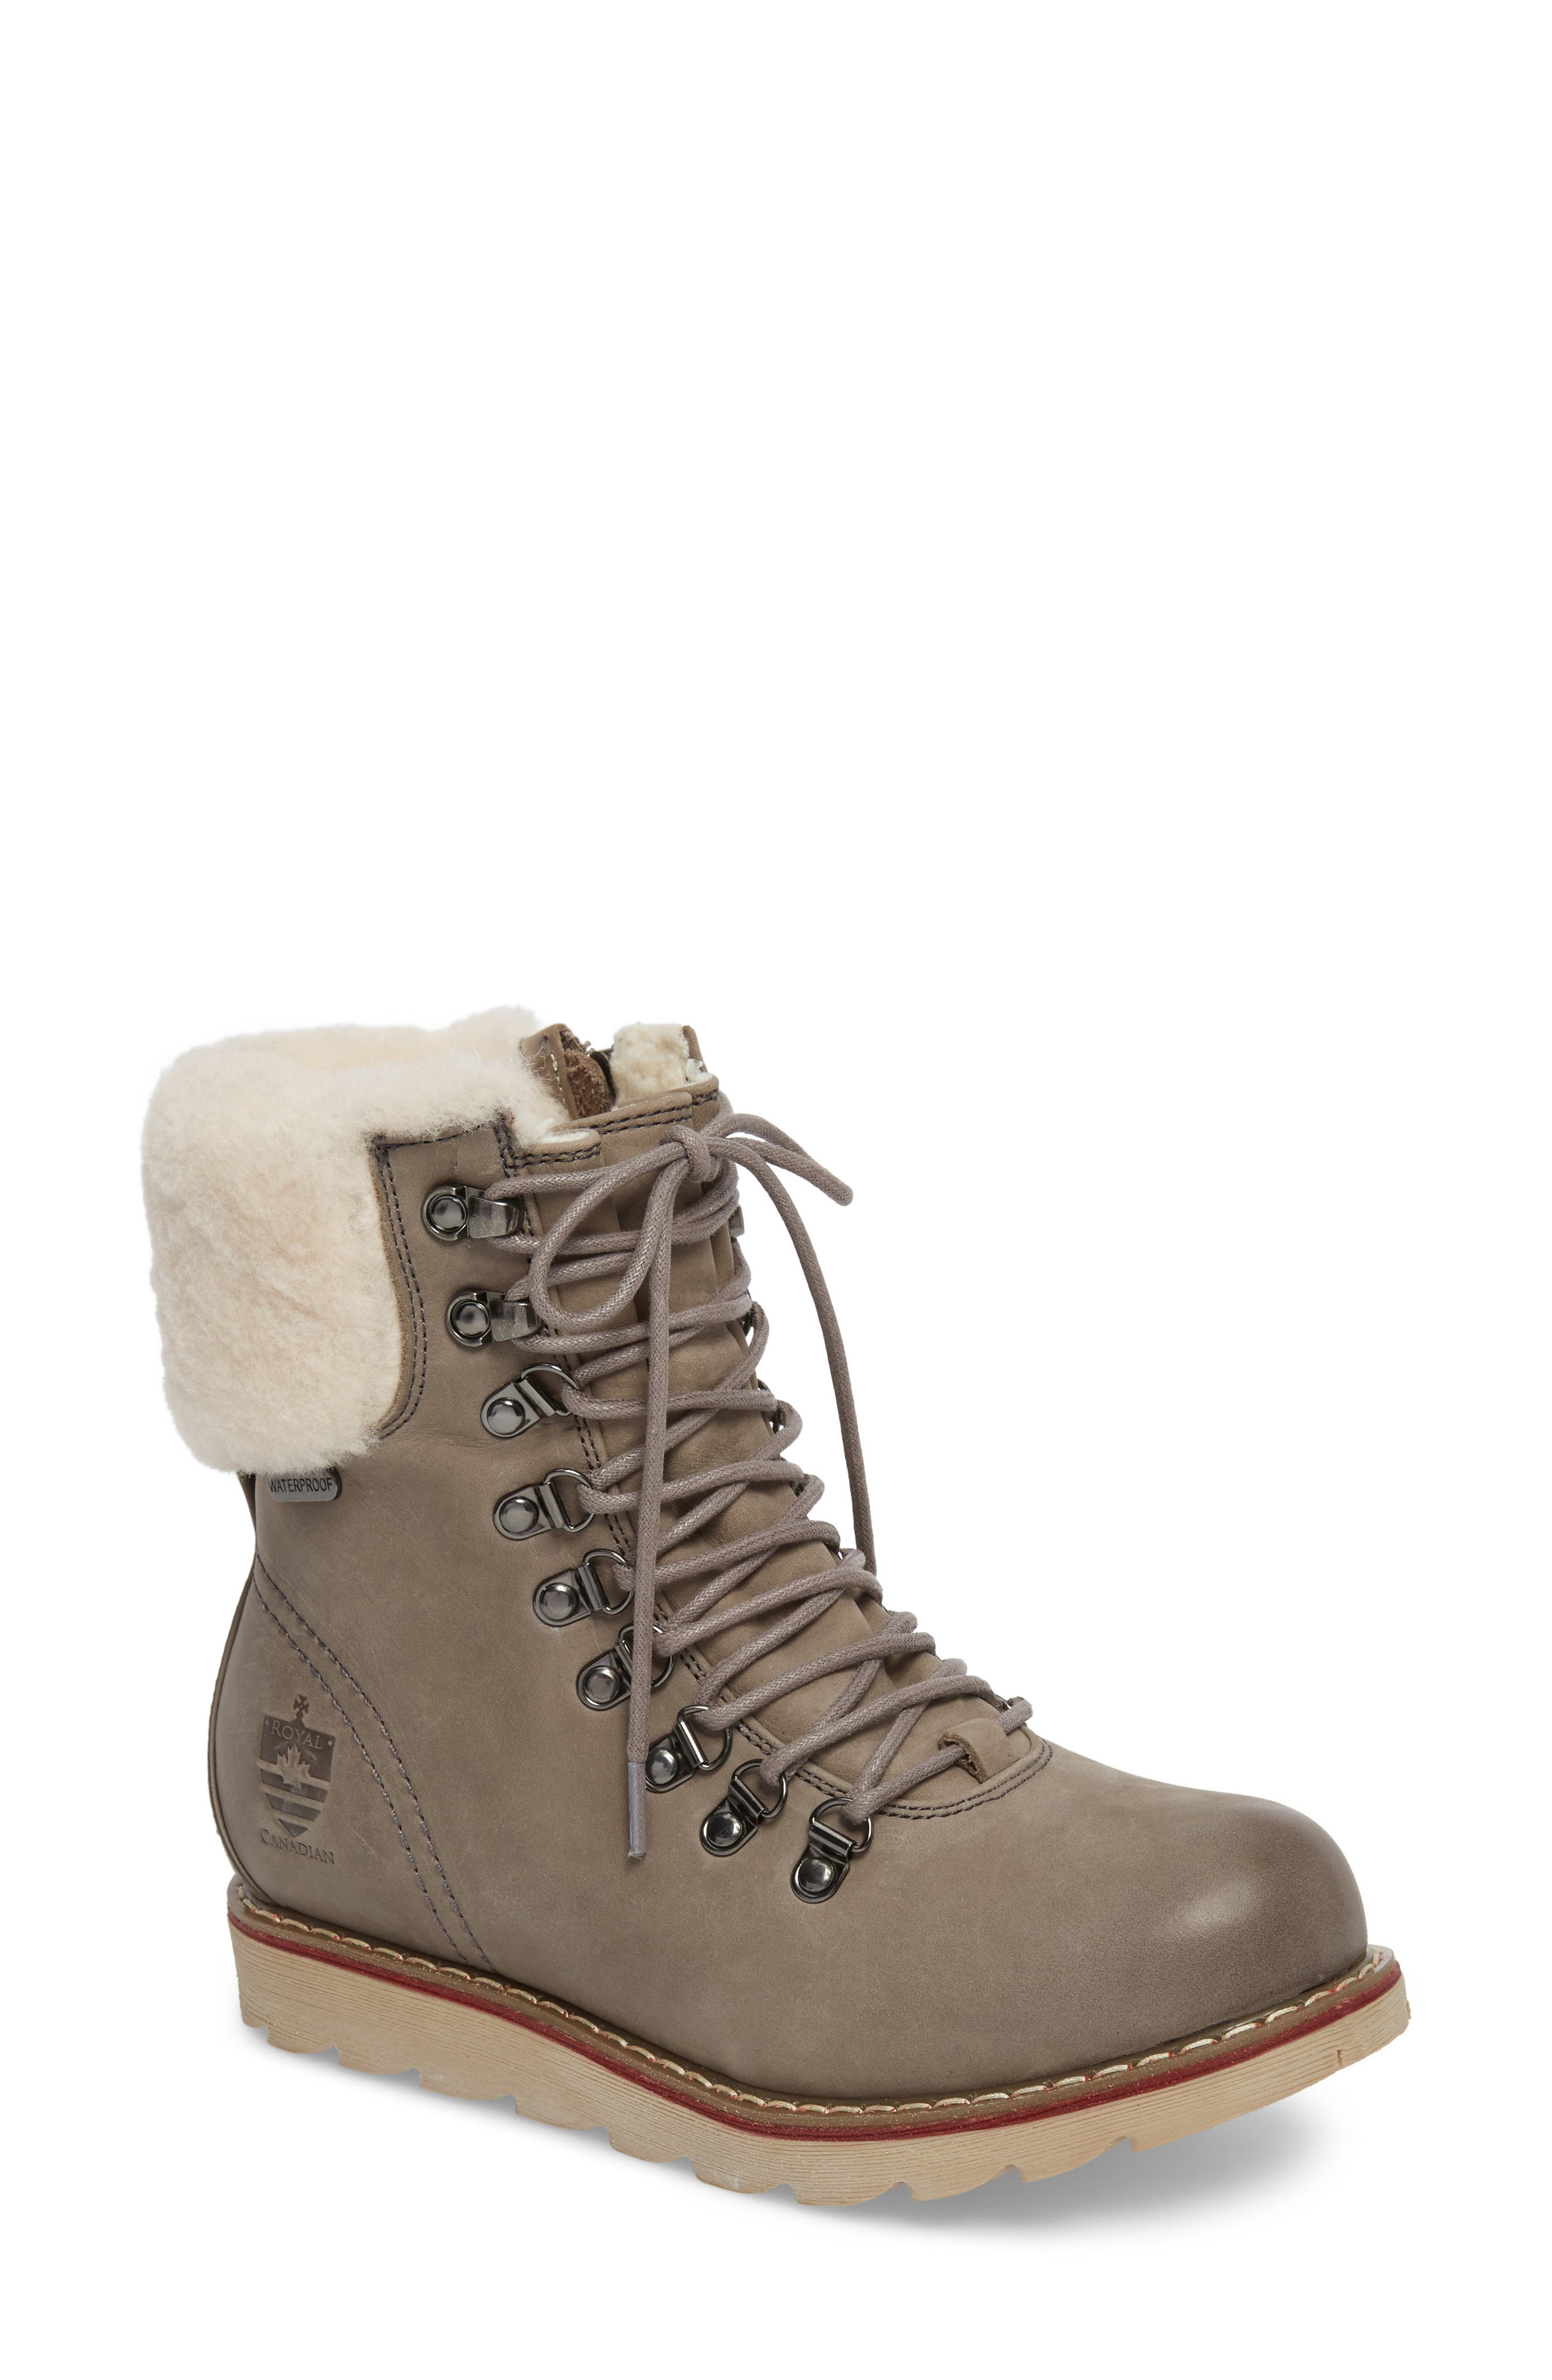 Lethbridge Waterproof Snow Boot with Genuine Shearling Cuff,                         Main,                         color, Grey Leather